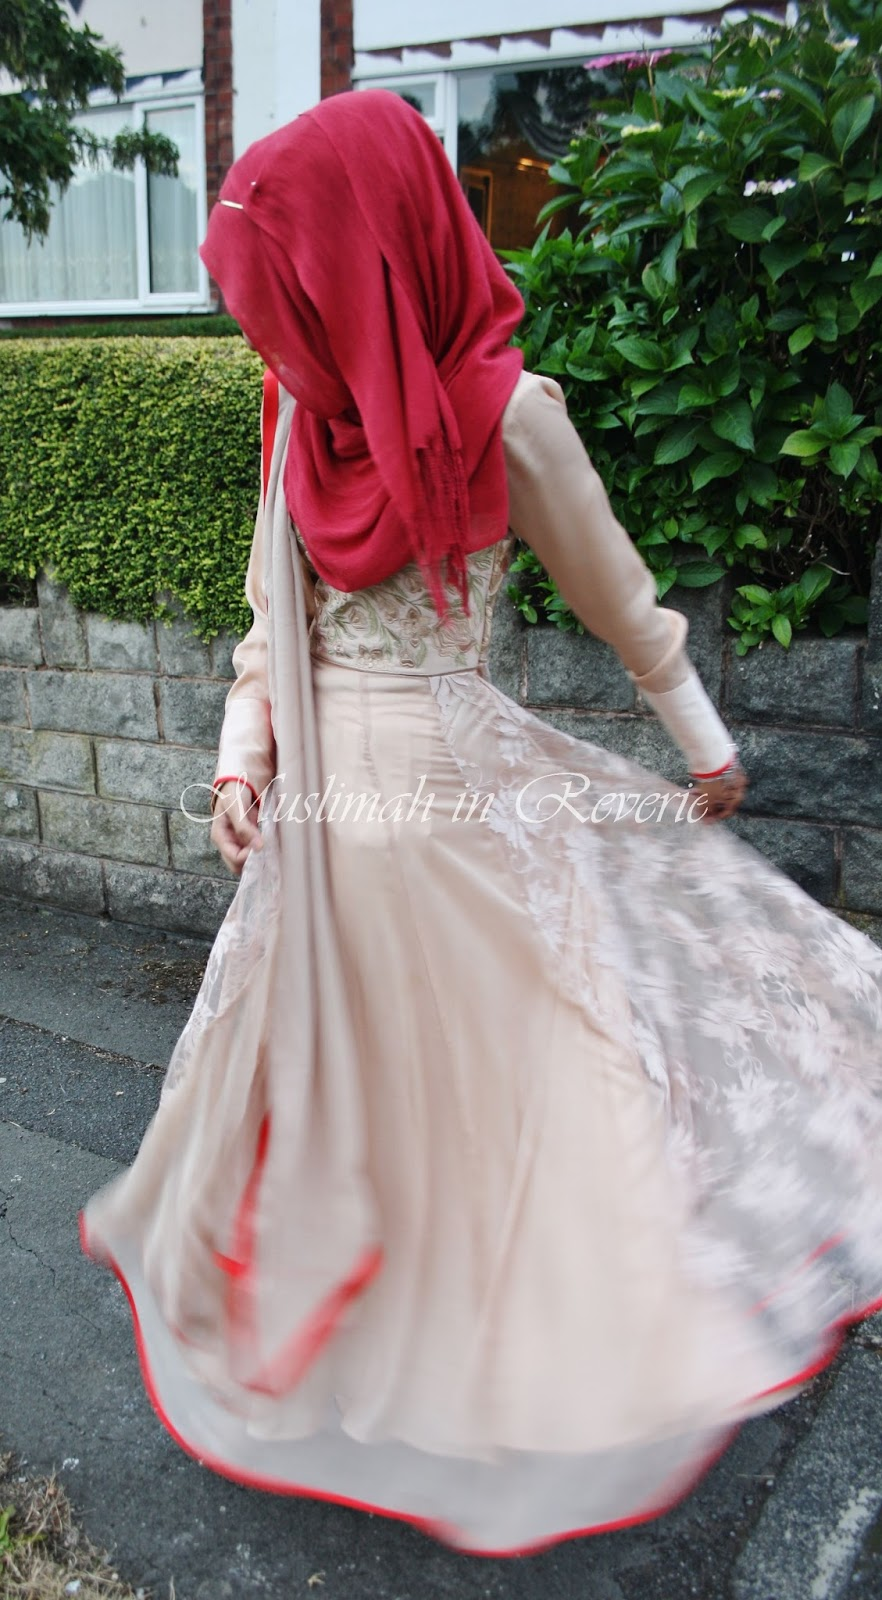 Outfit Of The Day: Eid Ul Fitr « Www.muslimahinreverie.com